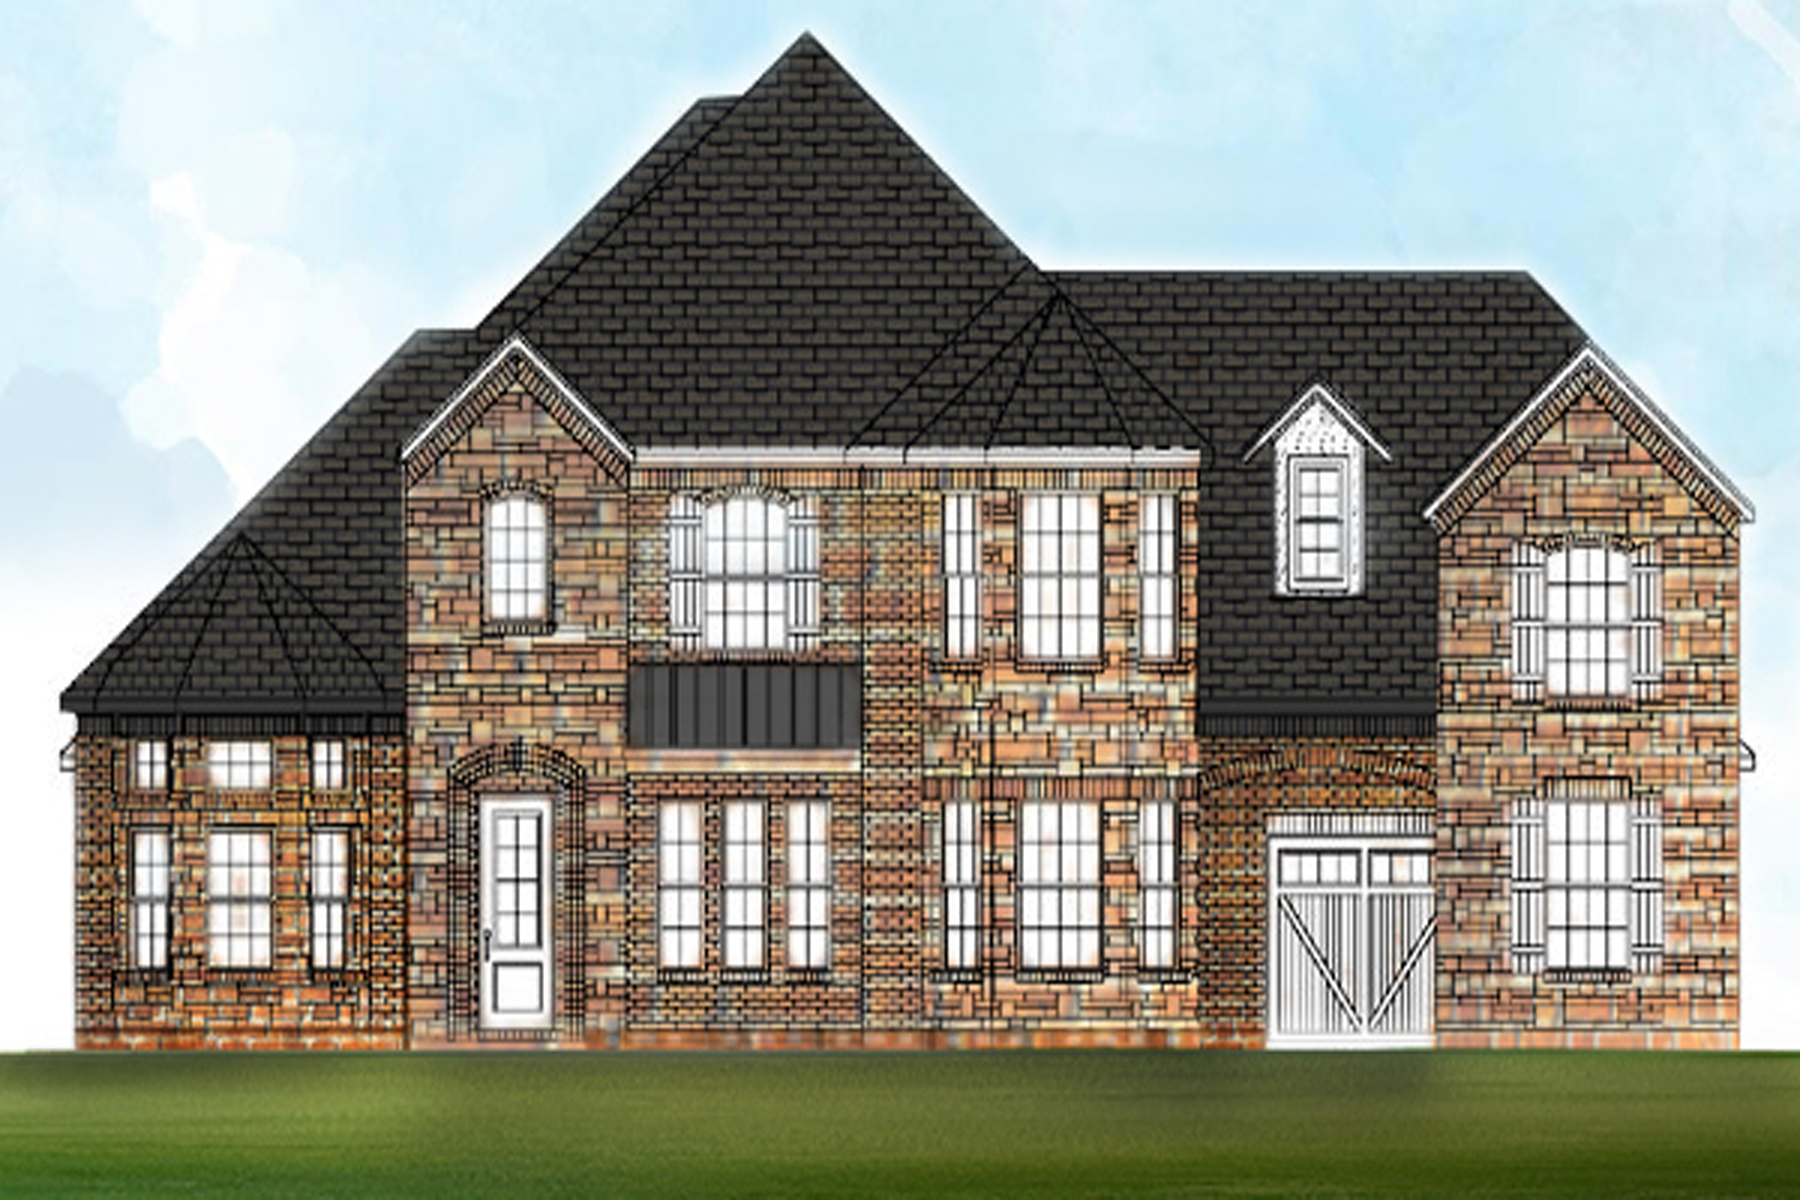 Villa per Vendita alle ore Luxurious New Construction In Gated Community 702 Bass Way Sandy Springs, Georgia, 30328 Stati Uniti